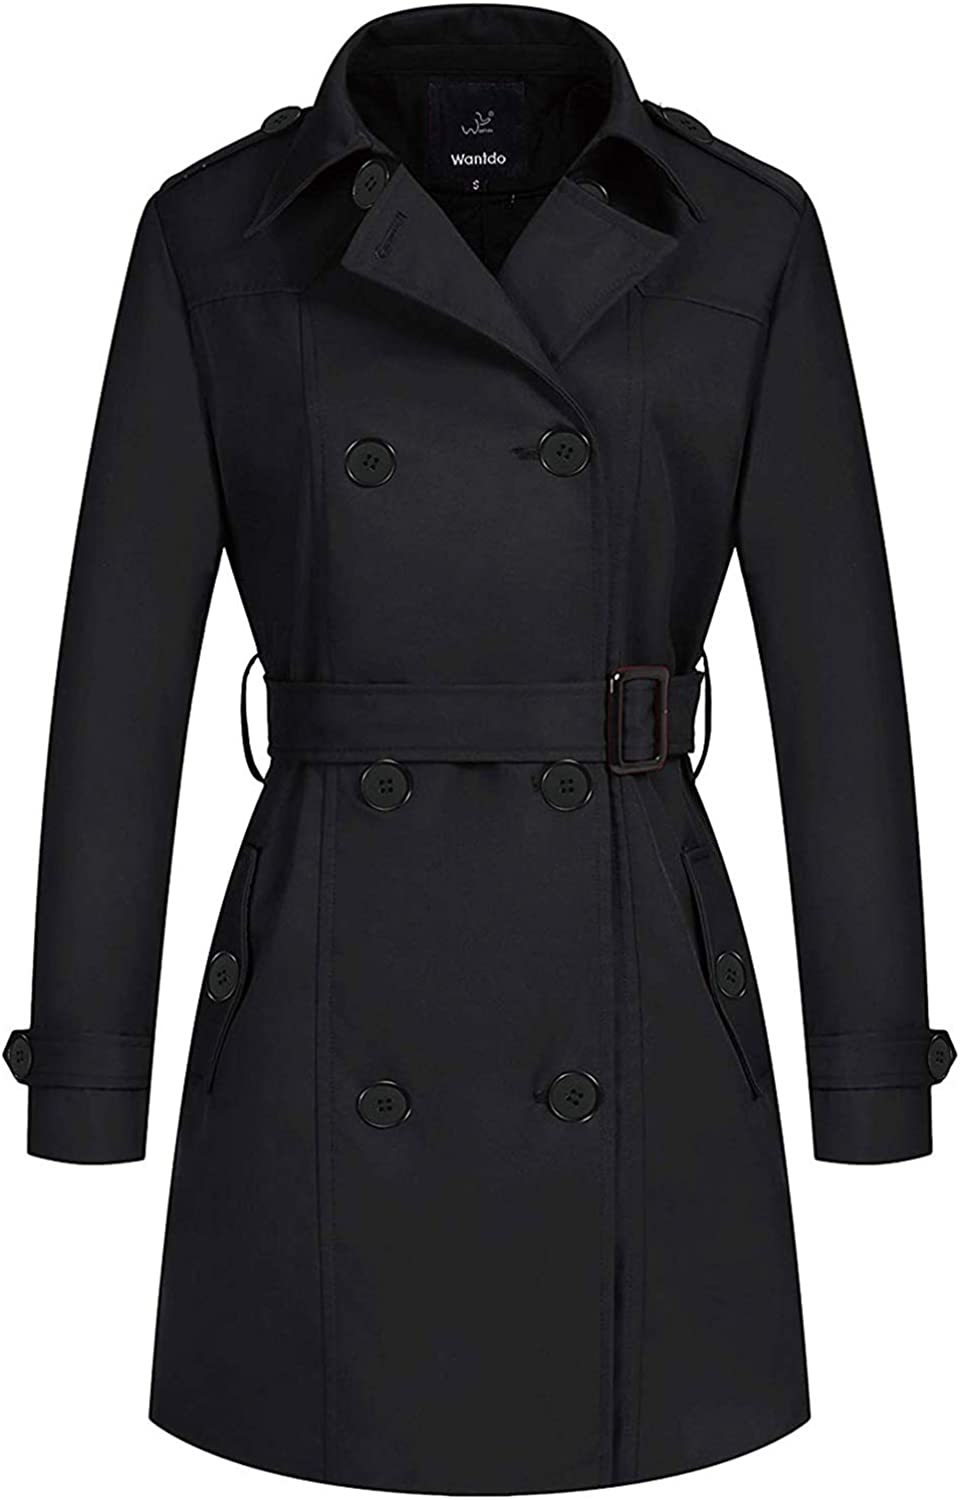 Wantdo Women's Online limited product Waterproof Free Shipping New Double-Breasted Classic Coat La Trench